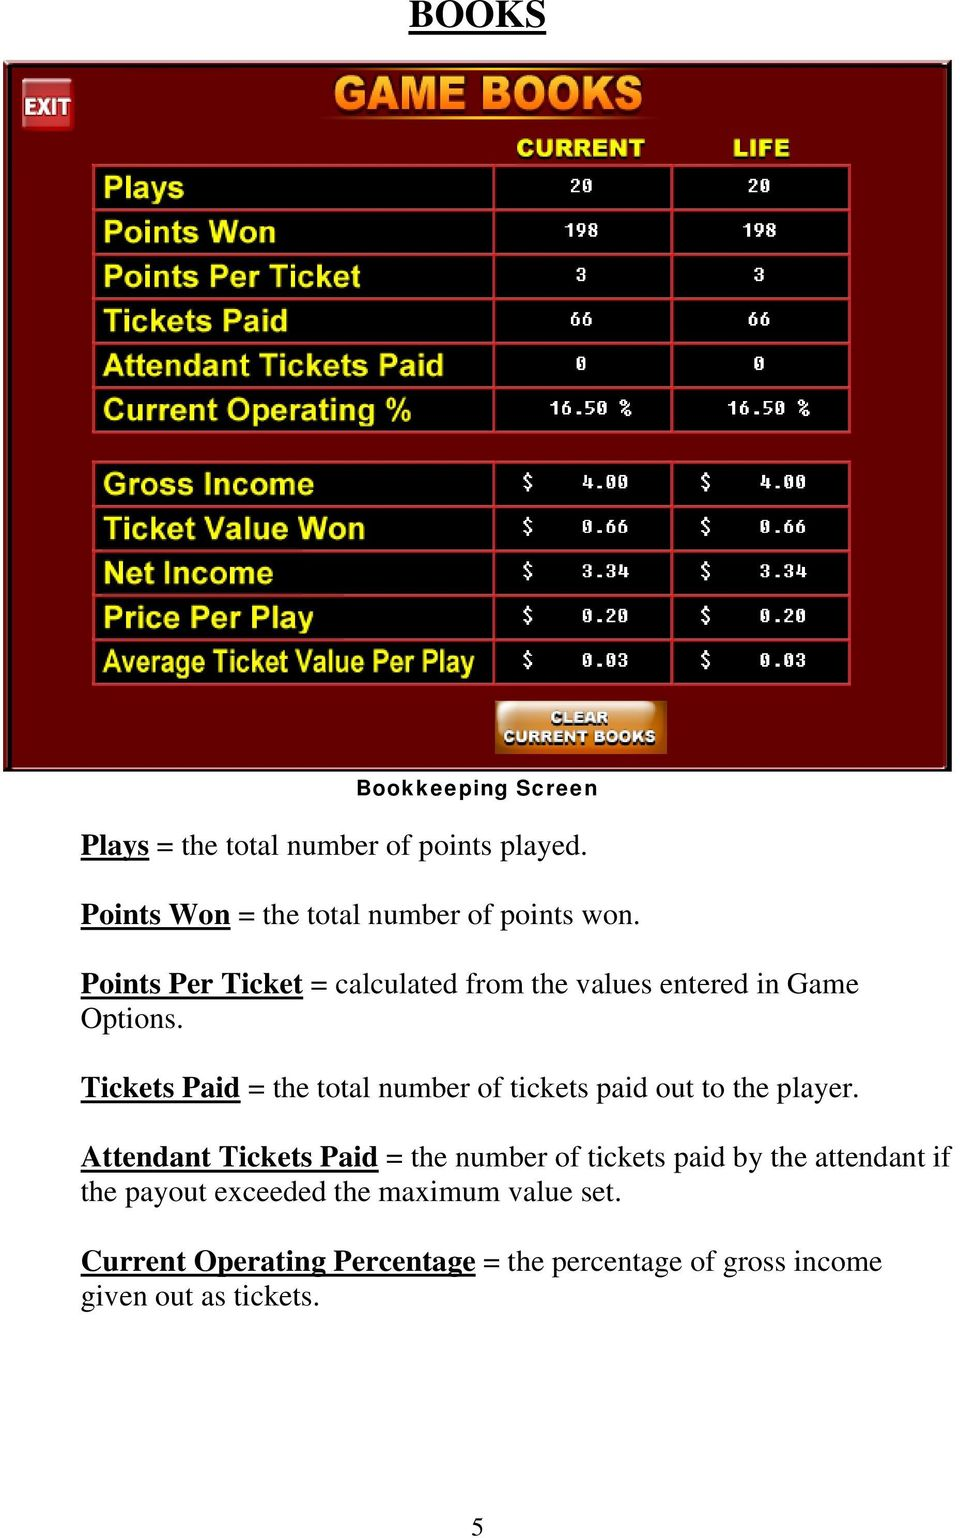 Tickets Paid = the total number of tickets paid out to the player.